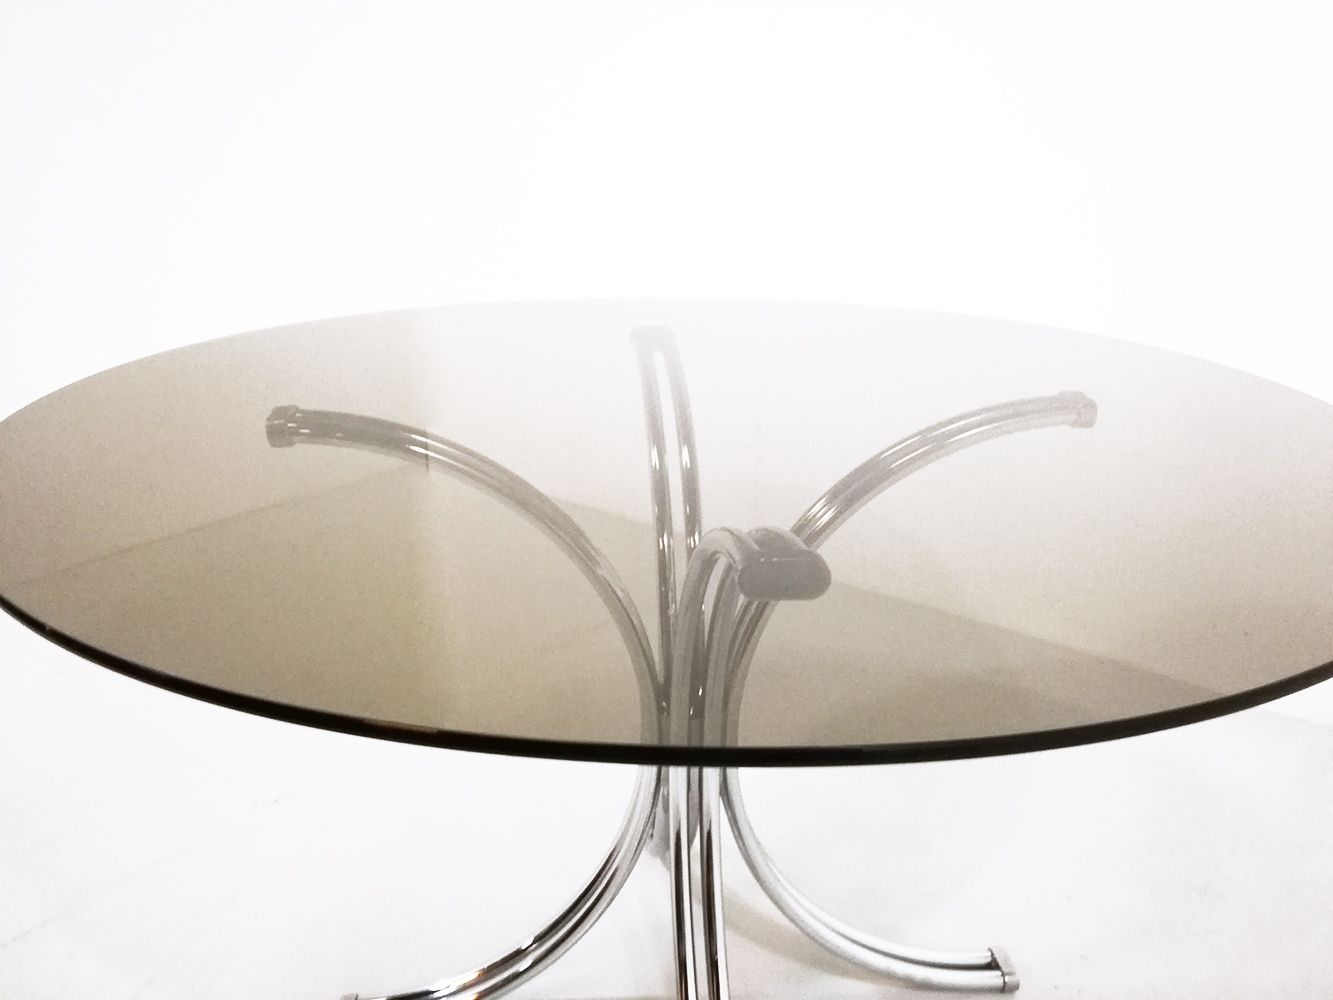 Round Smoked Glass Dining Table Smoked Glass Round Dining Table 1970 For Sale At Pamono